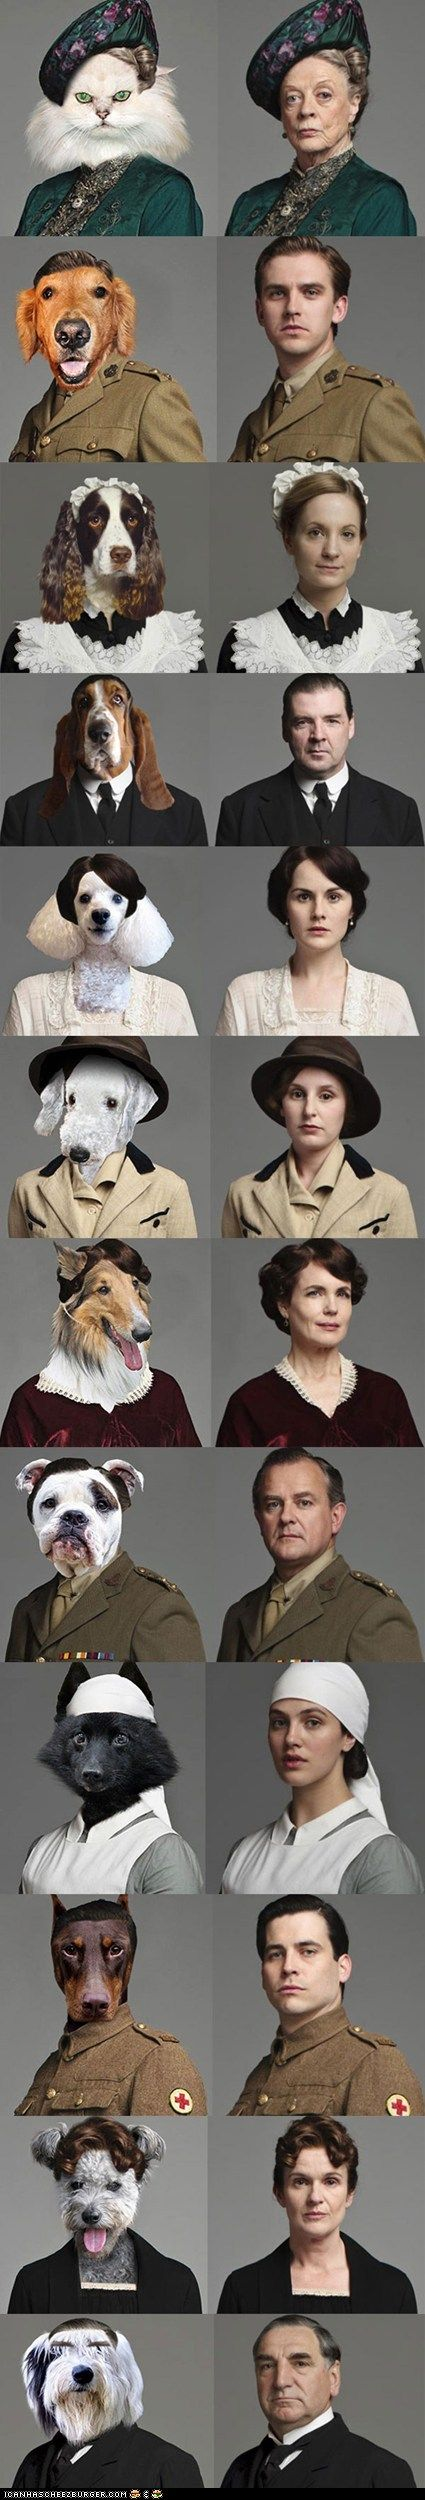 The Cast Of Downton Abbey As Cats And Dogs Downton Abbey Characters Downton Abbey Cast Downton Abbey